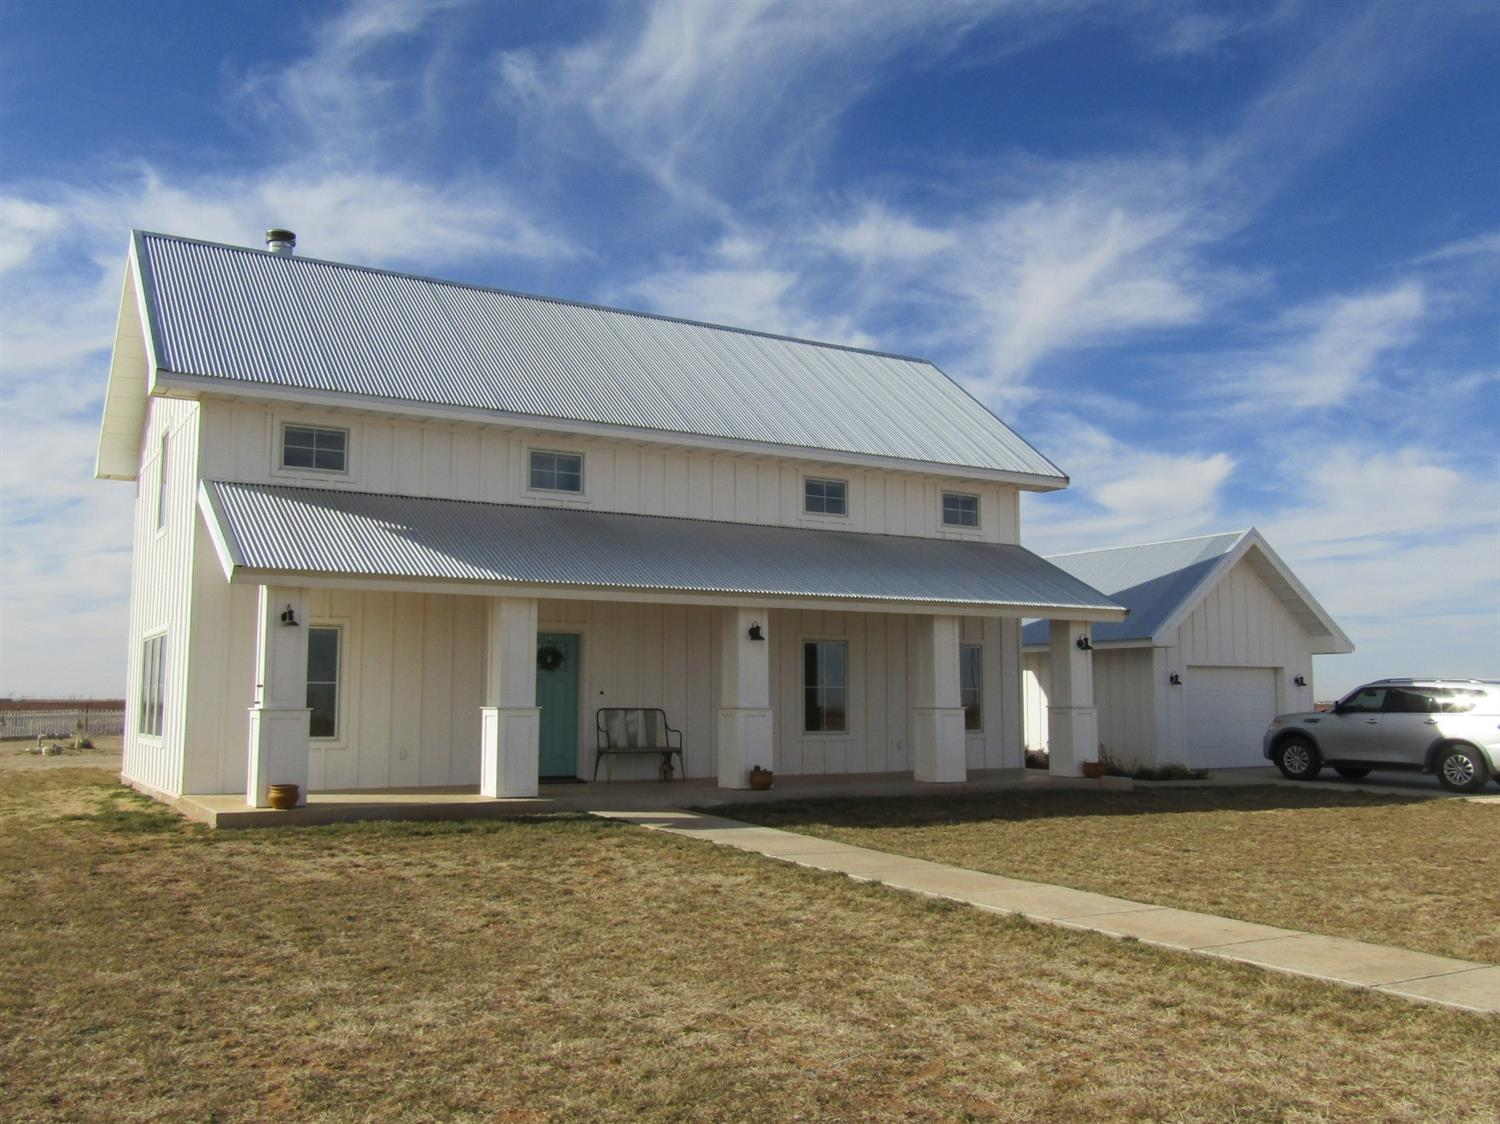 Adorable Two-Story, Modern Farm House on 3.5 Acres!  Located on 3.5 acres Southwest of Levelland with paved access.  This custom built home is only 4 years old and offers a beautifully unique style plus tall ceilings, large windows and  open spaces. 3 bedrooms, 3 bathrooms with large kitchen offering stainless appliances, island, gas range and lots of storage. There is a finished basement and a unfinished bonus room upstairs that could be 4th bedroom, den or gameroom.  Also features high efficiency HVAC system, foam insulation, double pane windows, water softner and much more. The acreage is fenced and cross fenced with 1120 SF barn and guest house, lawn sprinkler, drip irrigation and much more!  Make an appointment to see it before someone else snatches it up!